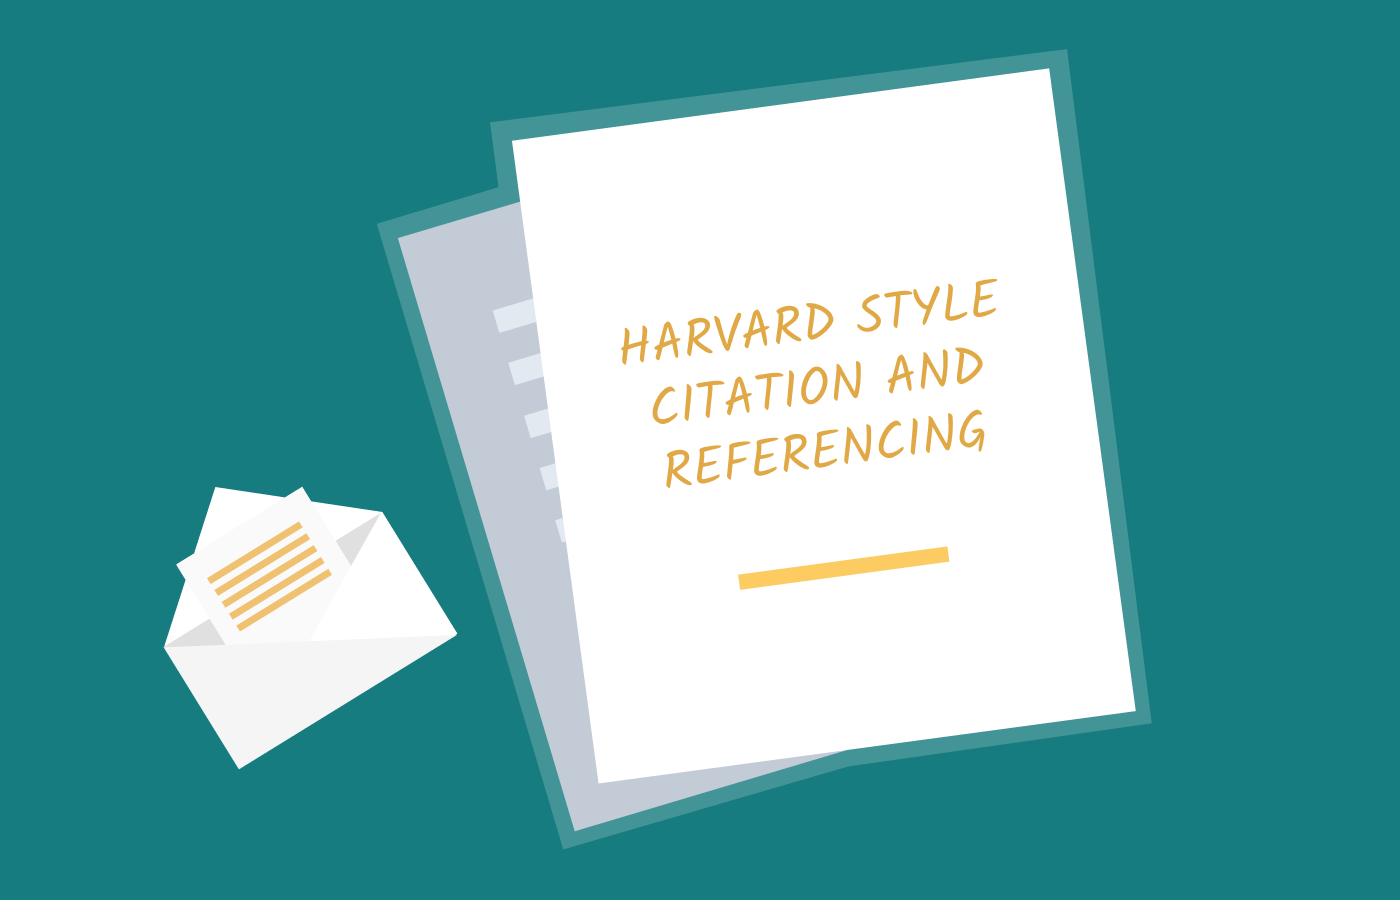 Harvard Style Citation And Referencing A Detailed Guide From Expert Online Essay Writer Admission How To Cite Textbook